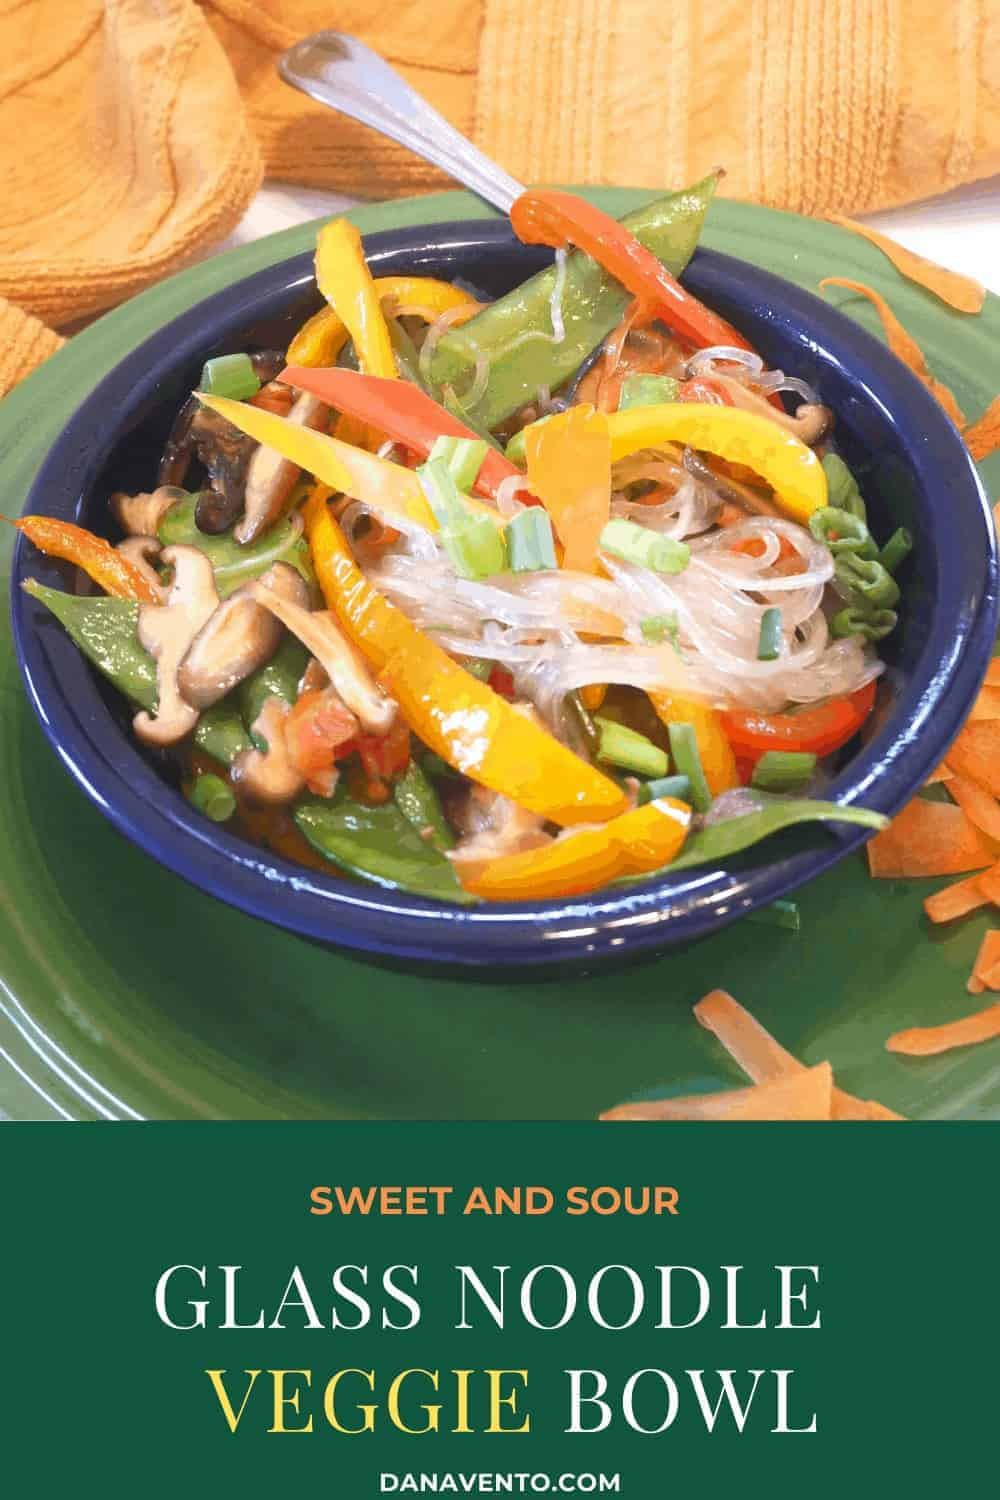 Sweet and Sour Glass Noodle Veggie Bowl